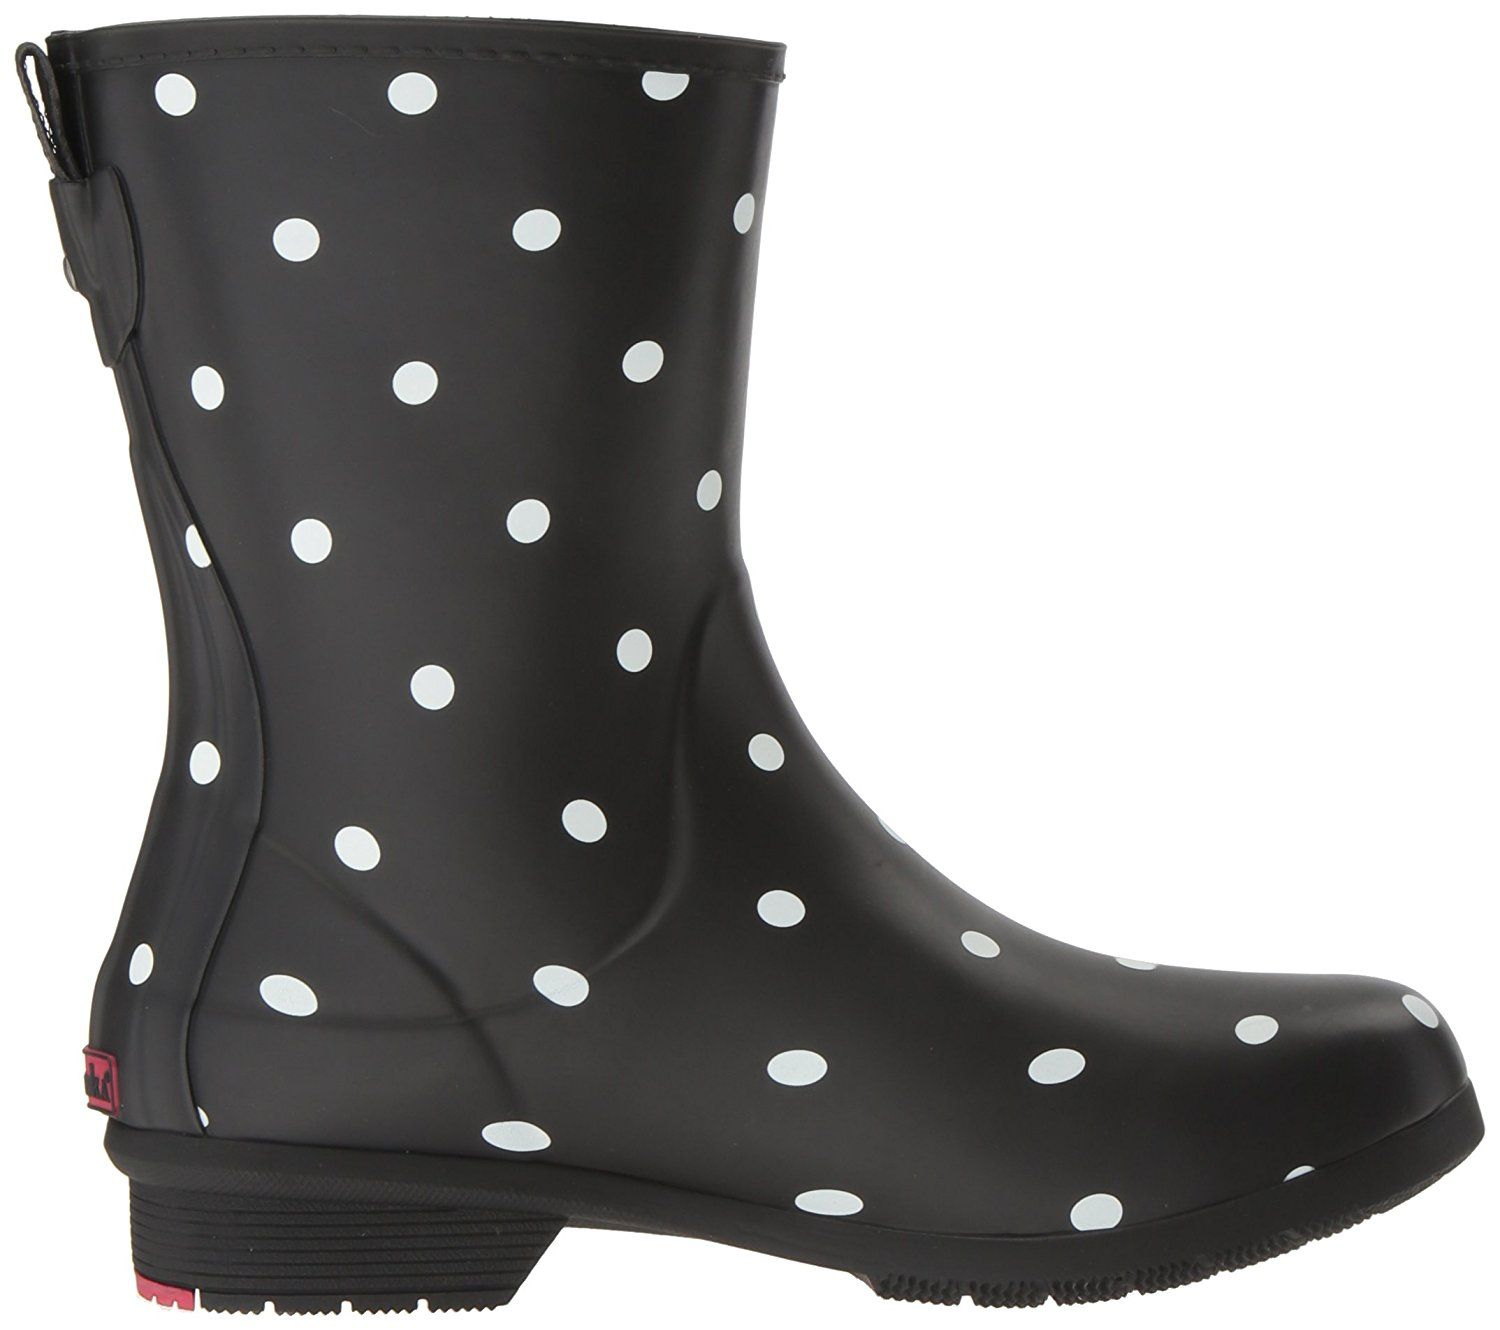 2049c4132247 Chooka Women s Mid-height Memory Foam Rain Boot   Click image for more  details.